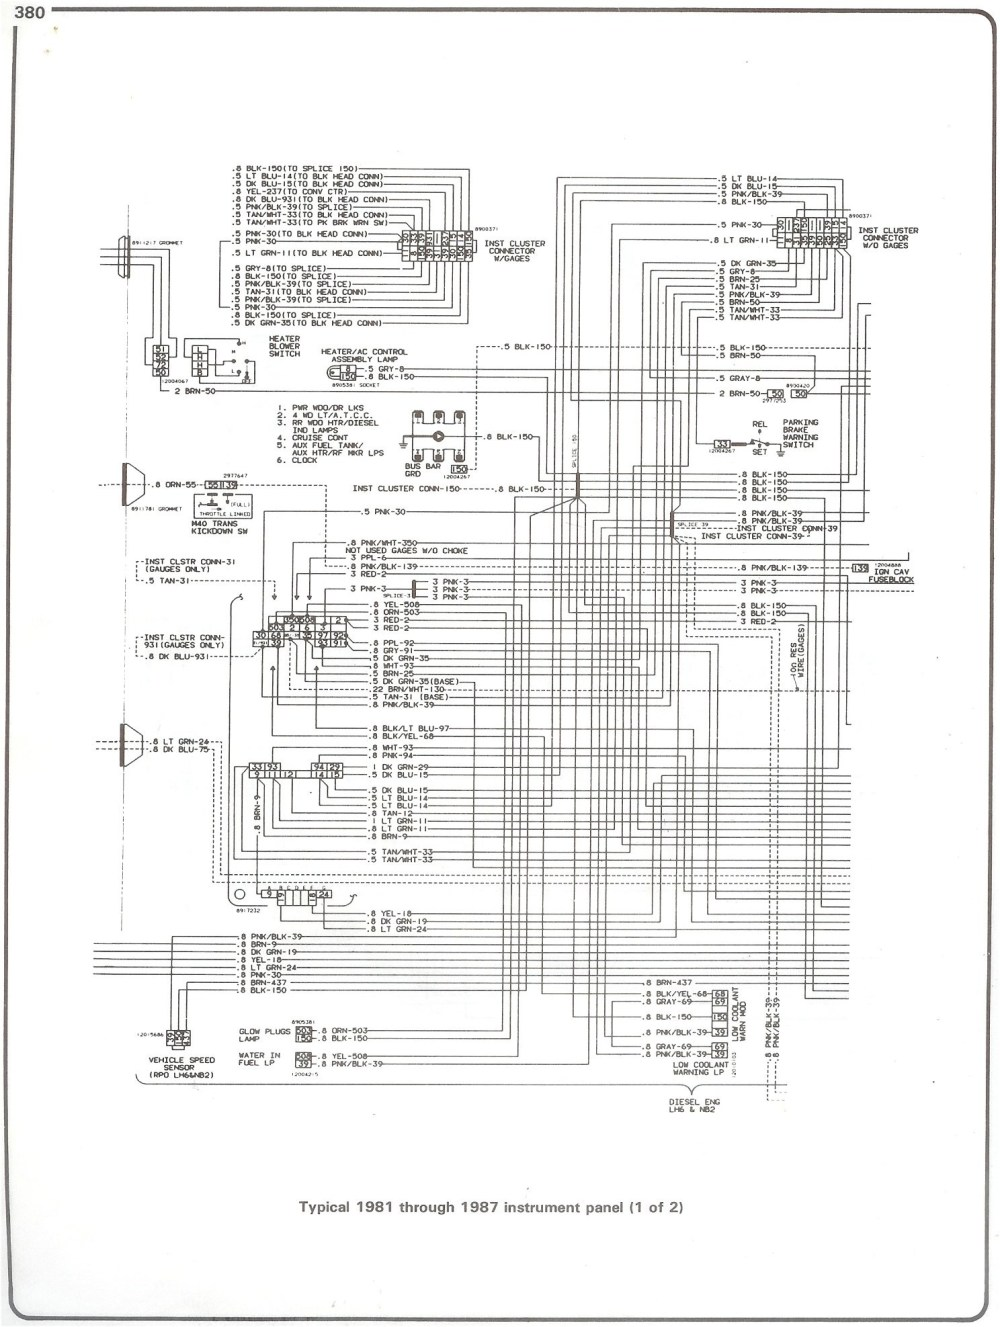 medium resolution of 1986 chevy k10 wiring diagram of truck wiring diagram review 86 chevy truck headlight wiring 86 chevy truck wiring